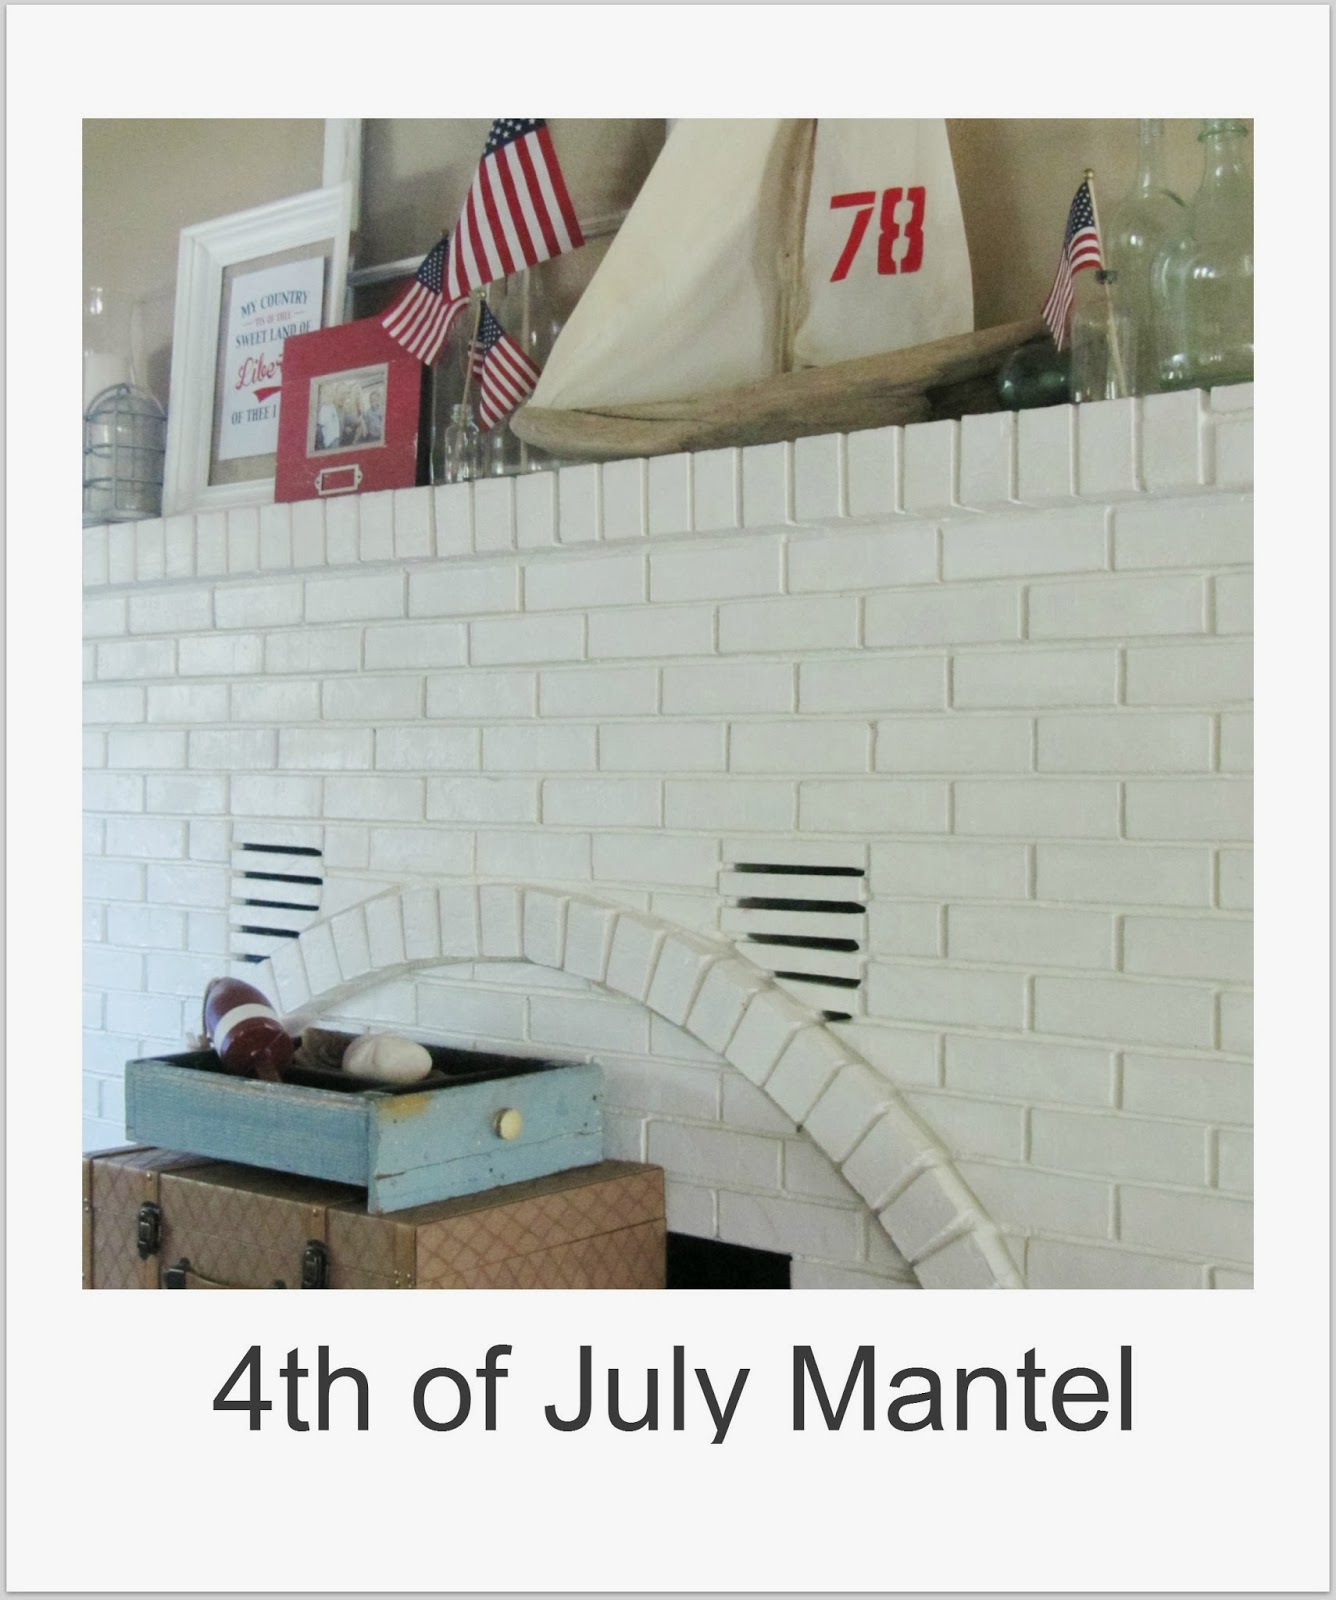 http://thewickerhouse.blogspot.com/2012/06/4th-of-july-mantle-updated.html